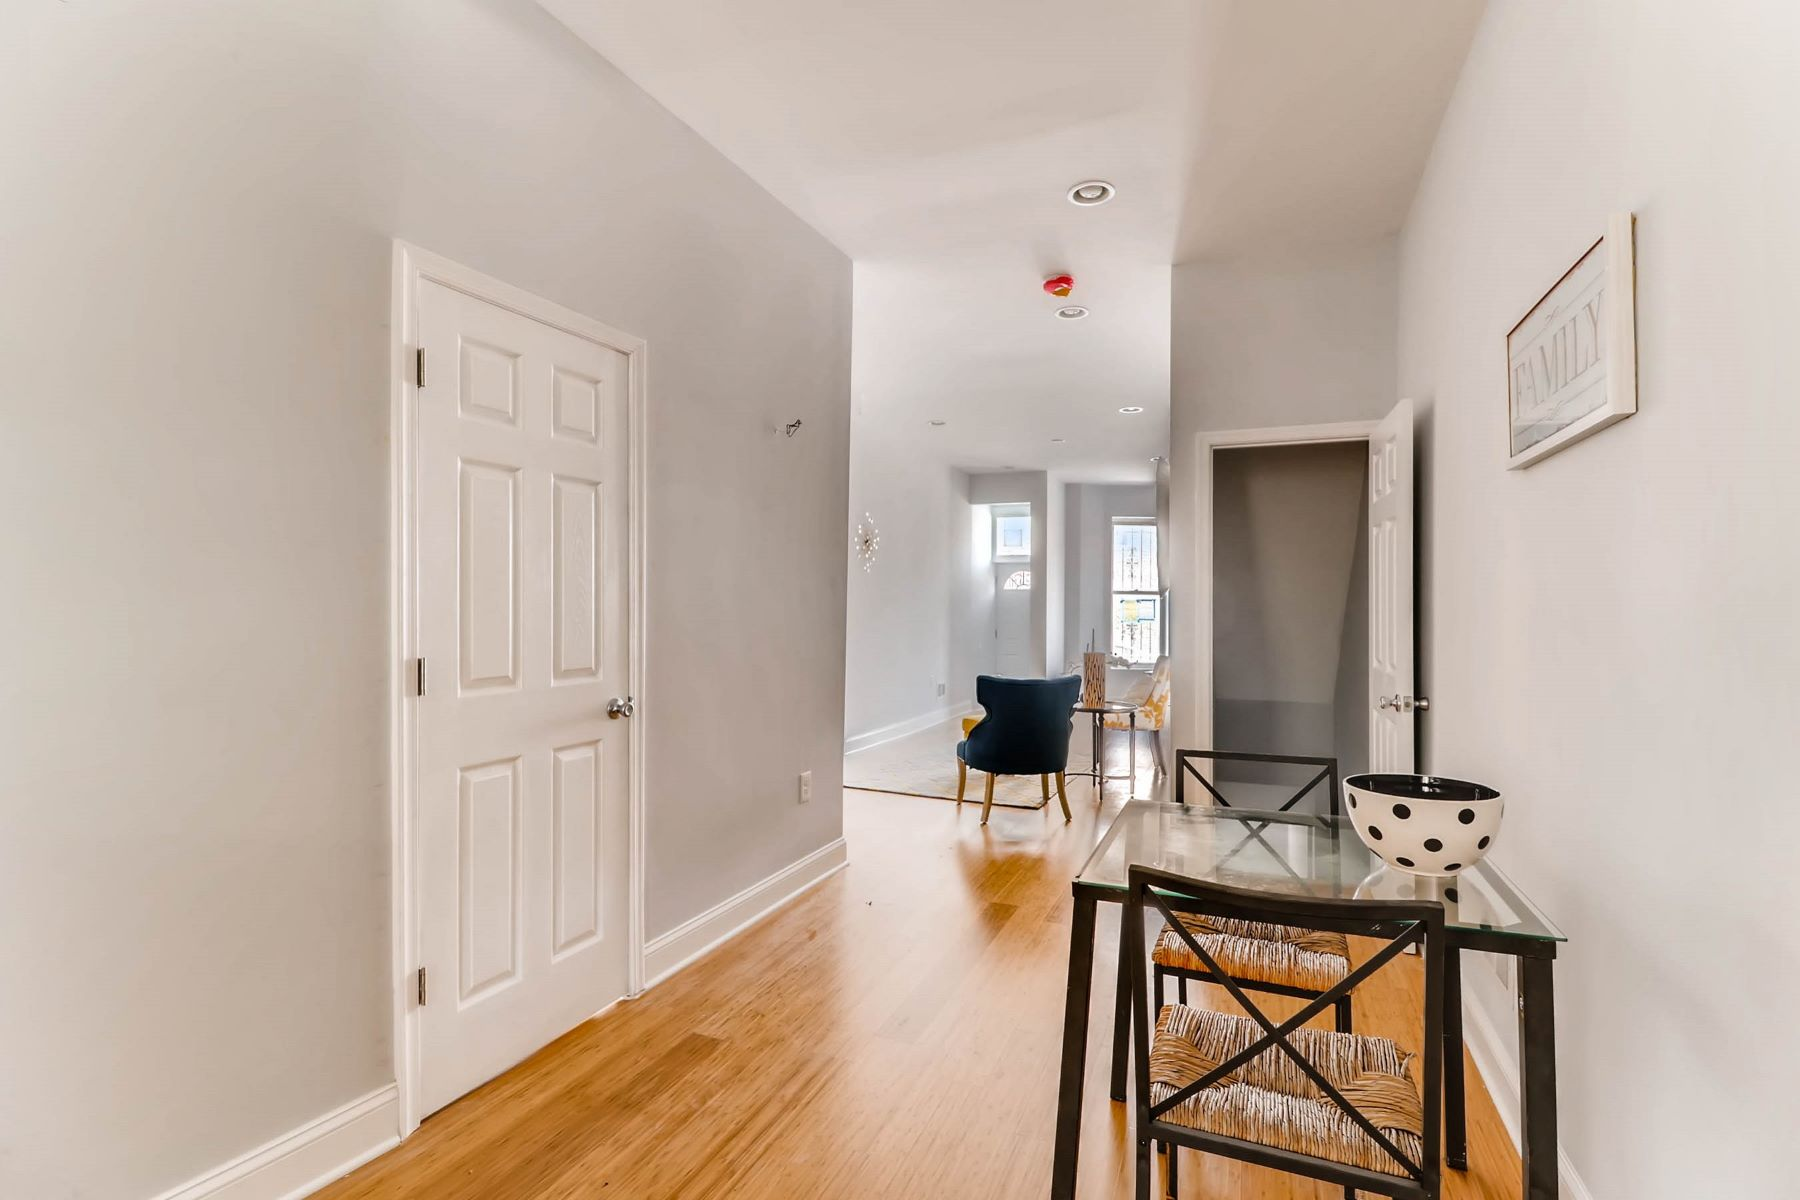 Single Family Home for Sale at 614 Montford Avenue, Baltimore, Maryland 614 Montford Avenue Baltimore, Maryland 21205 United States